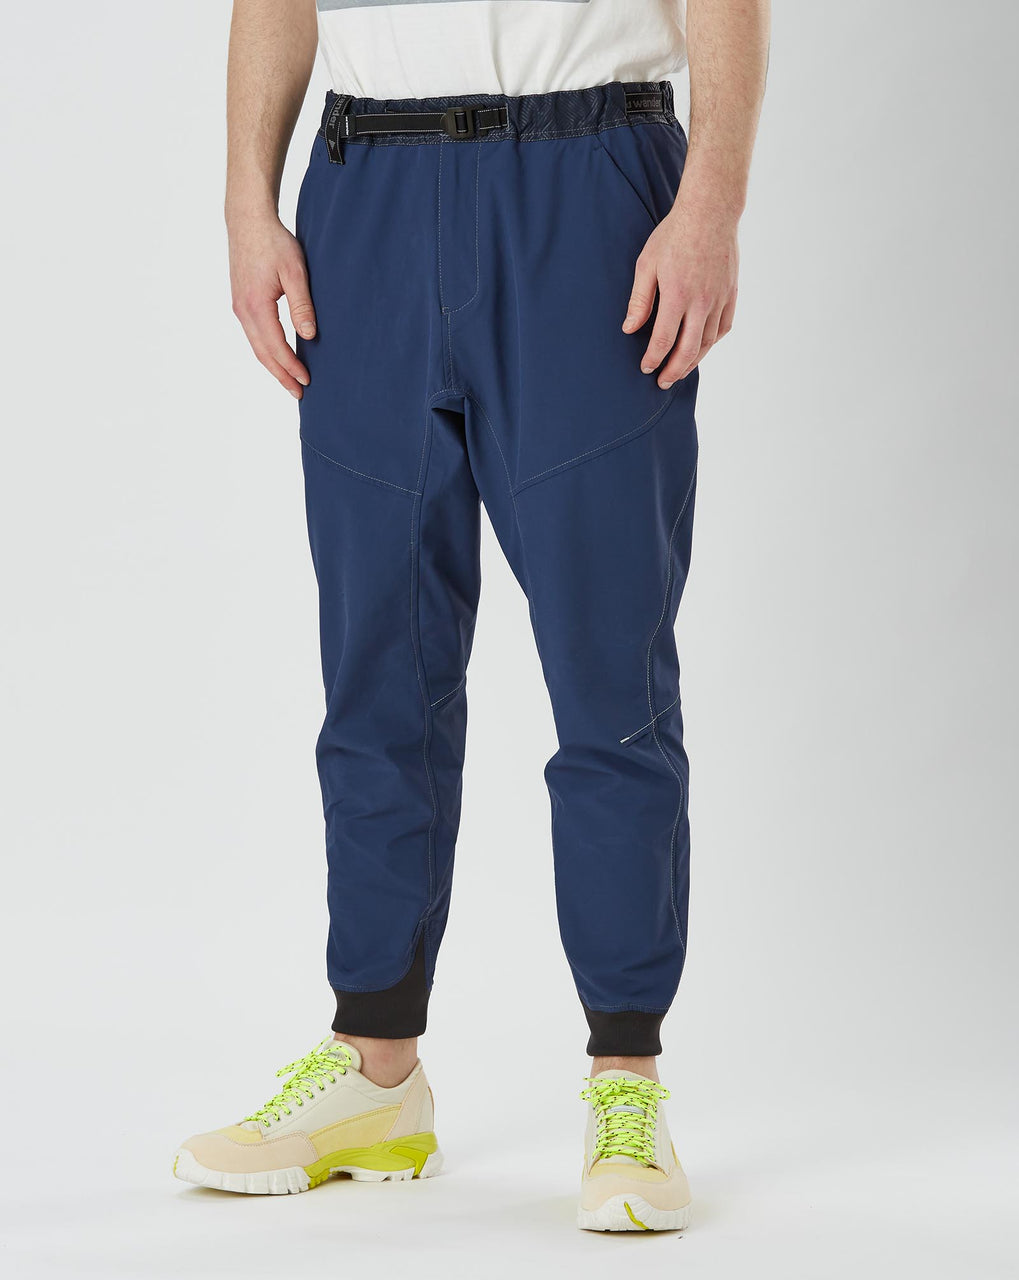 and Wander Schoeller 3XDRY Stretch Saruel Pants (Navy)